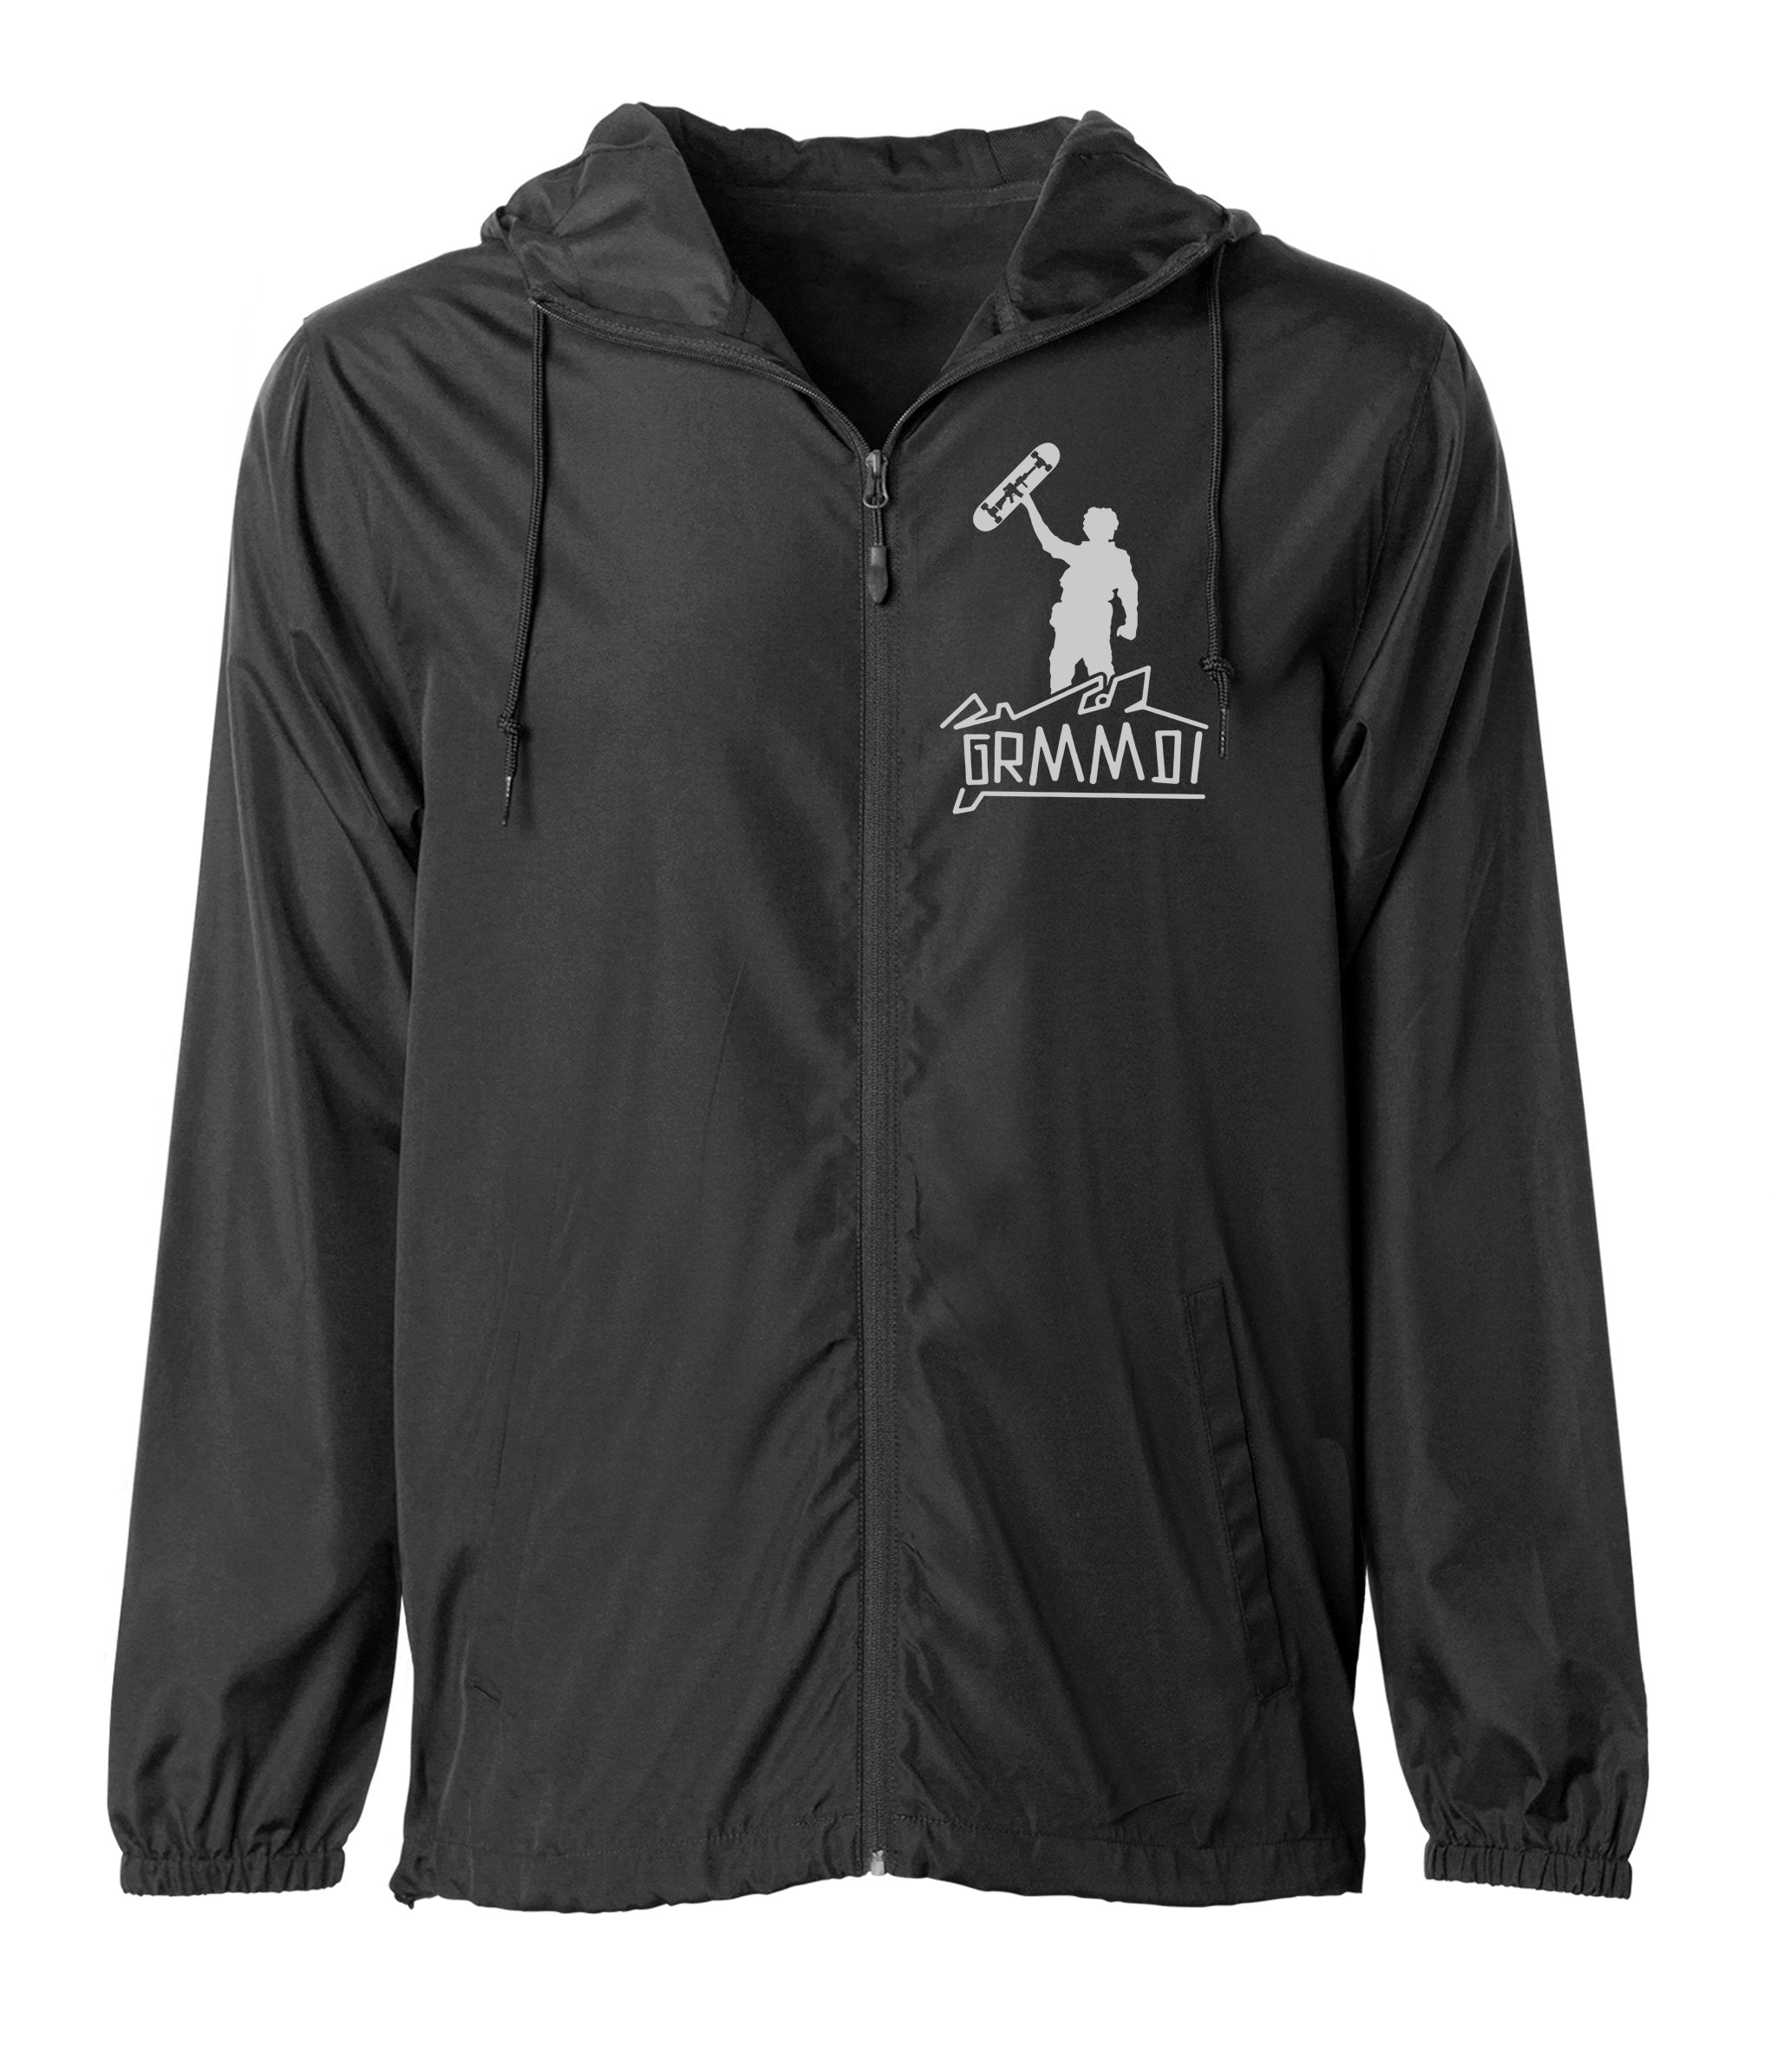 GRMMDI Lightweight Windbreaker